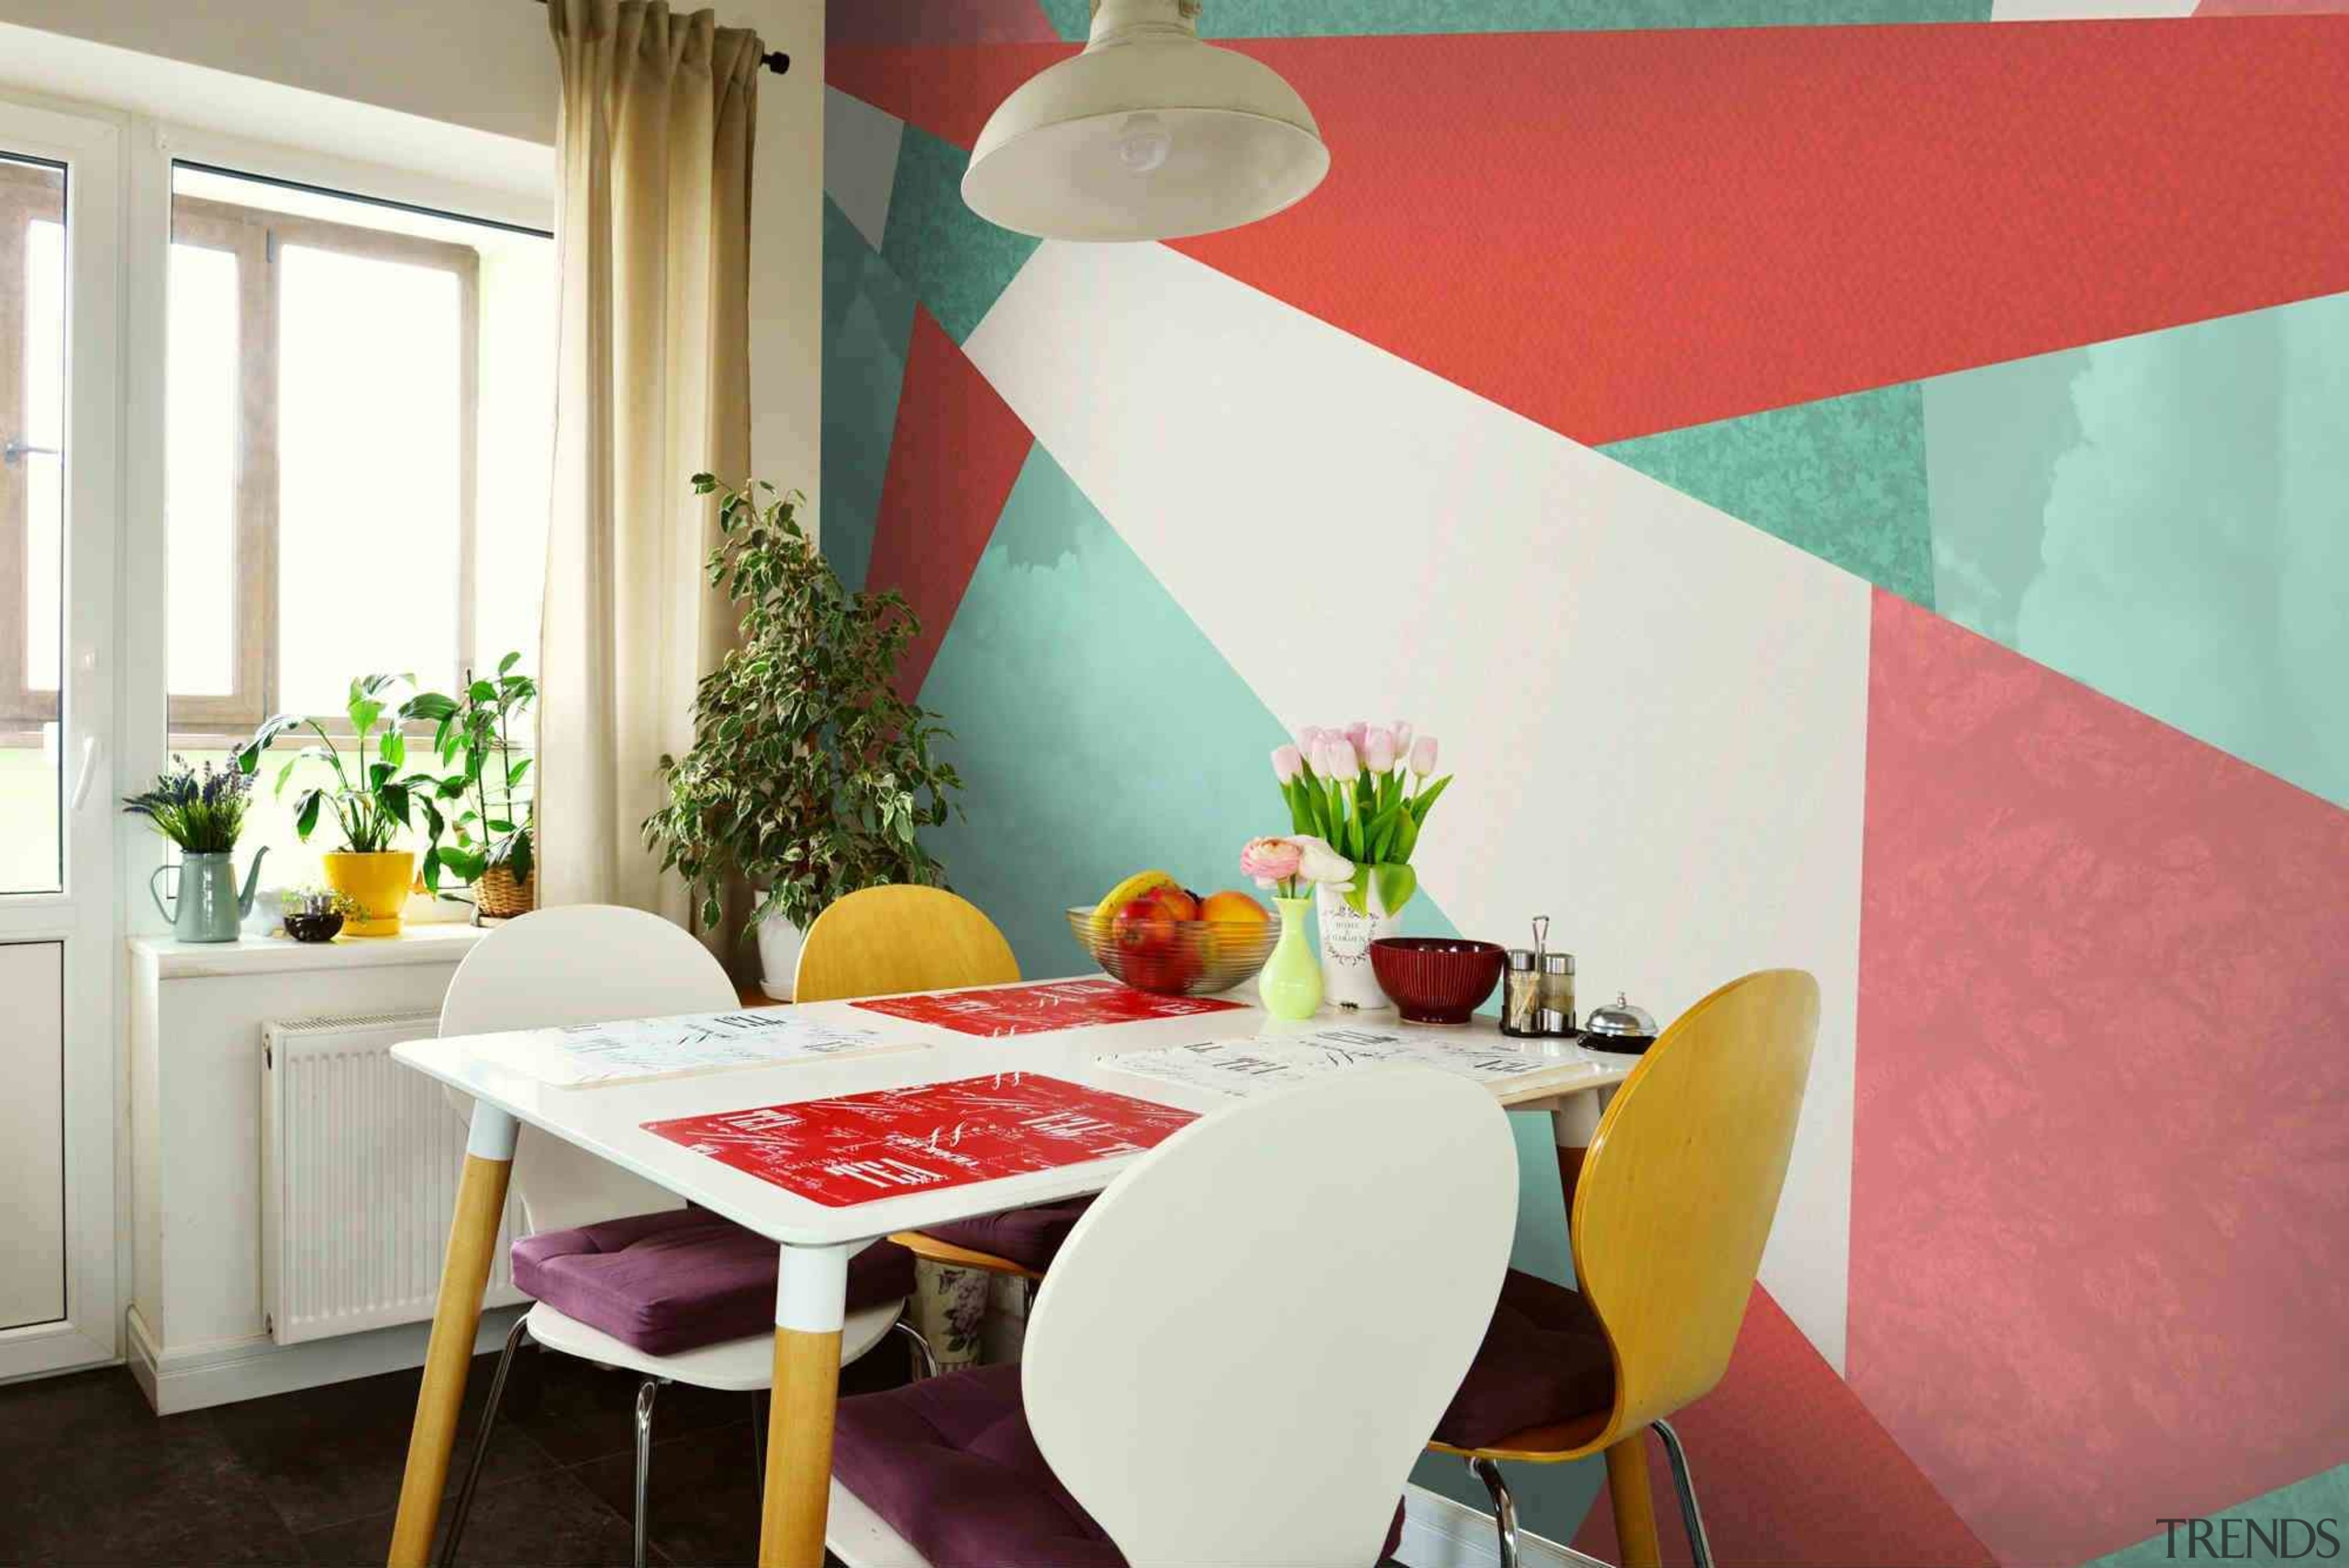 Geometric wallpaper - Geometric wallpaper - chair | chair, dining room, furniture, home, house, interior design, real estate, room, table, wall, window, red